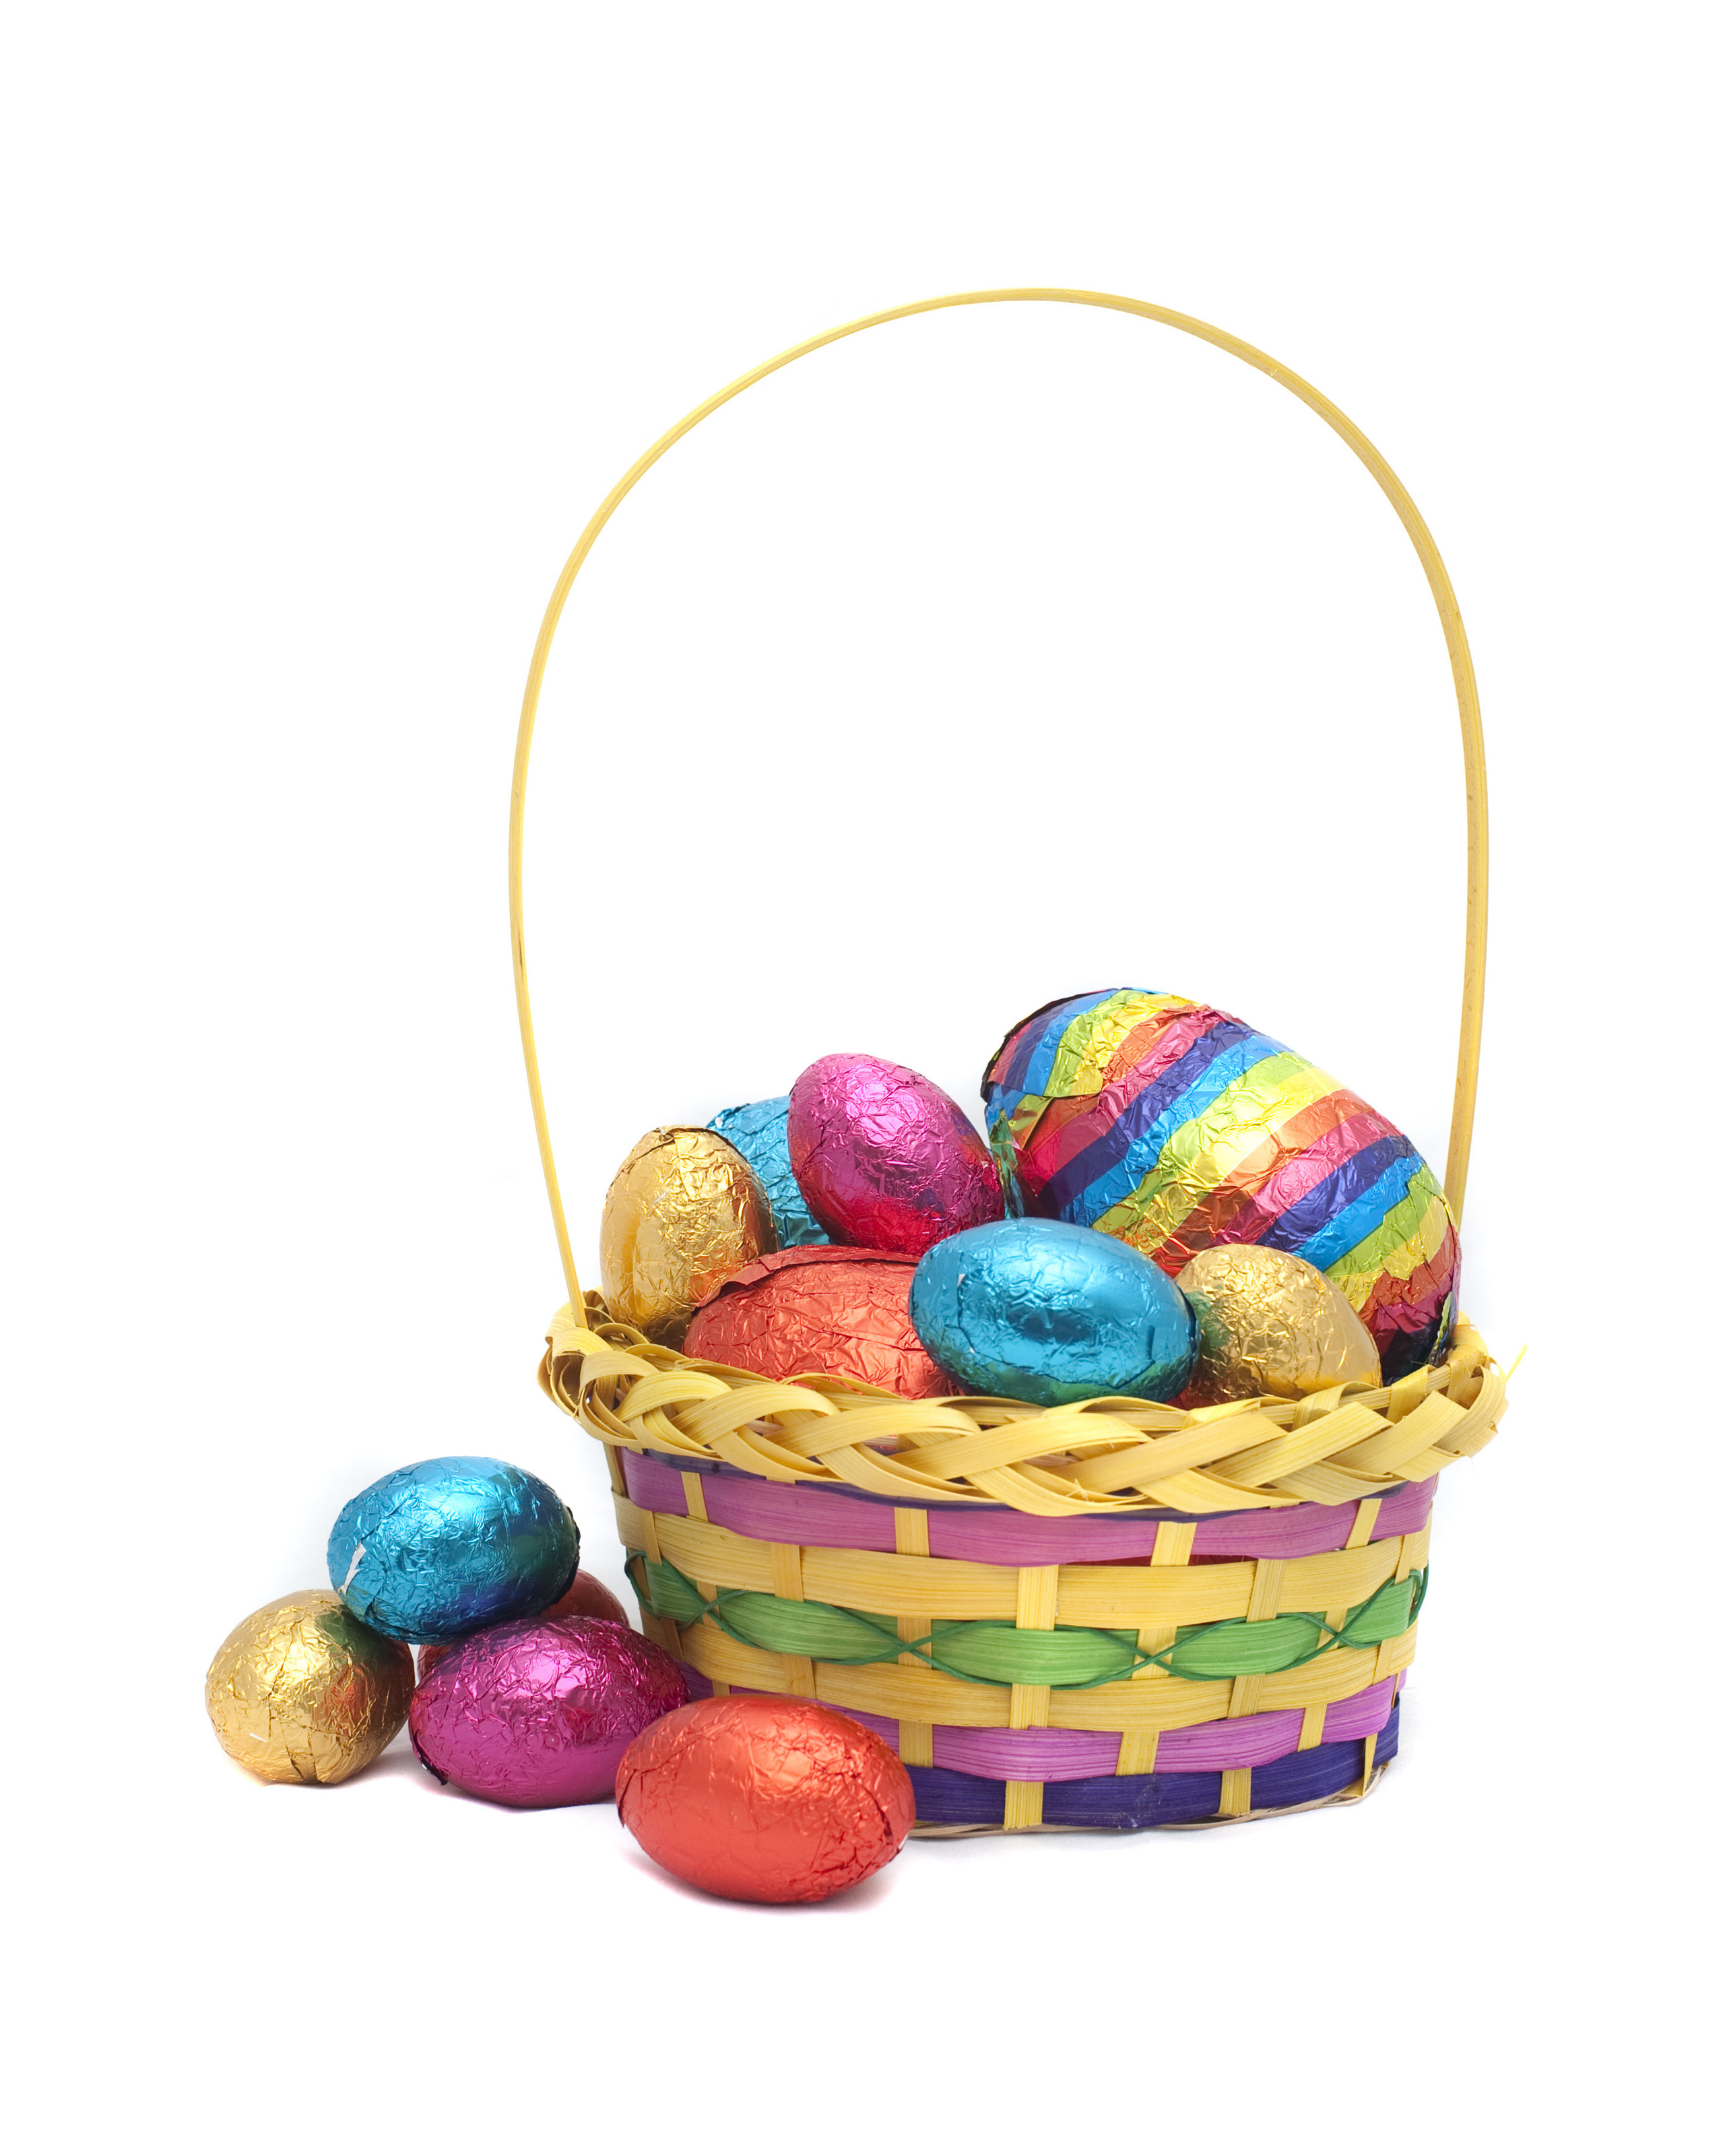 Free stock photo 7900 easter egg basket freeimageslive a decorative basket filled to overflowing with colourful foil wrapped easter eggs on a white background negle Images